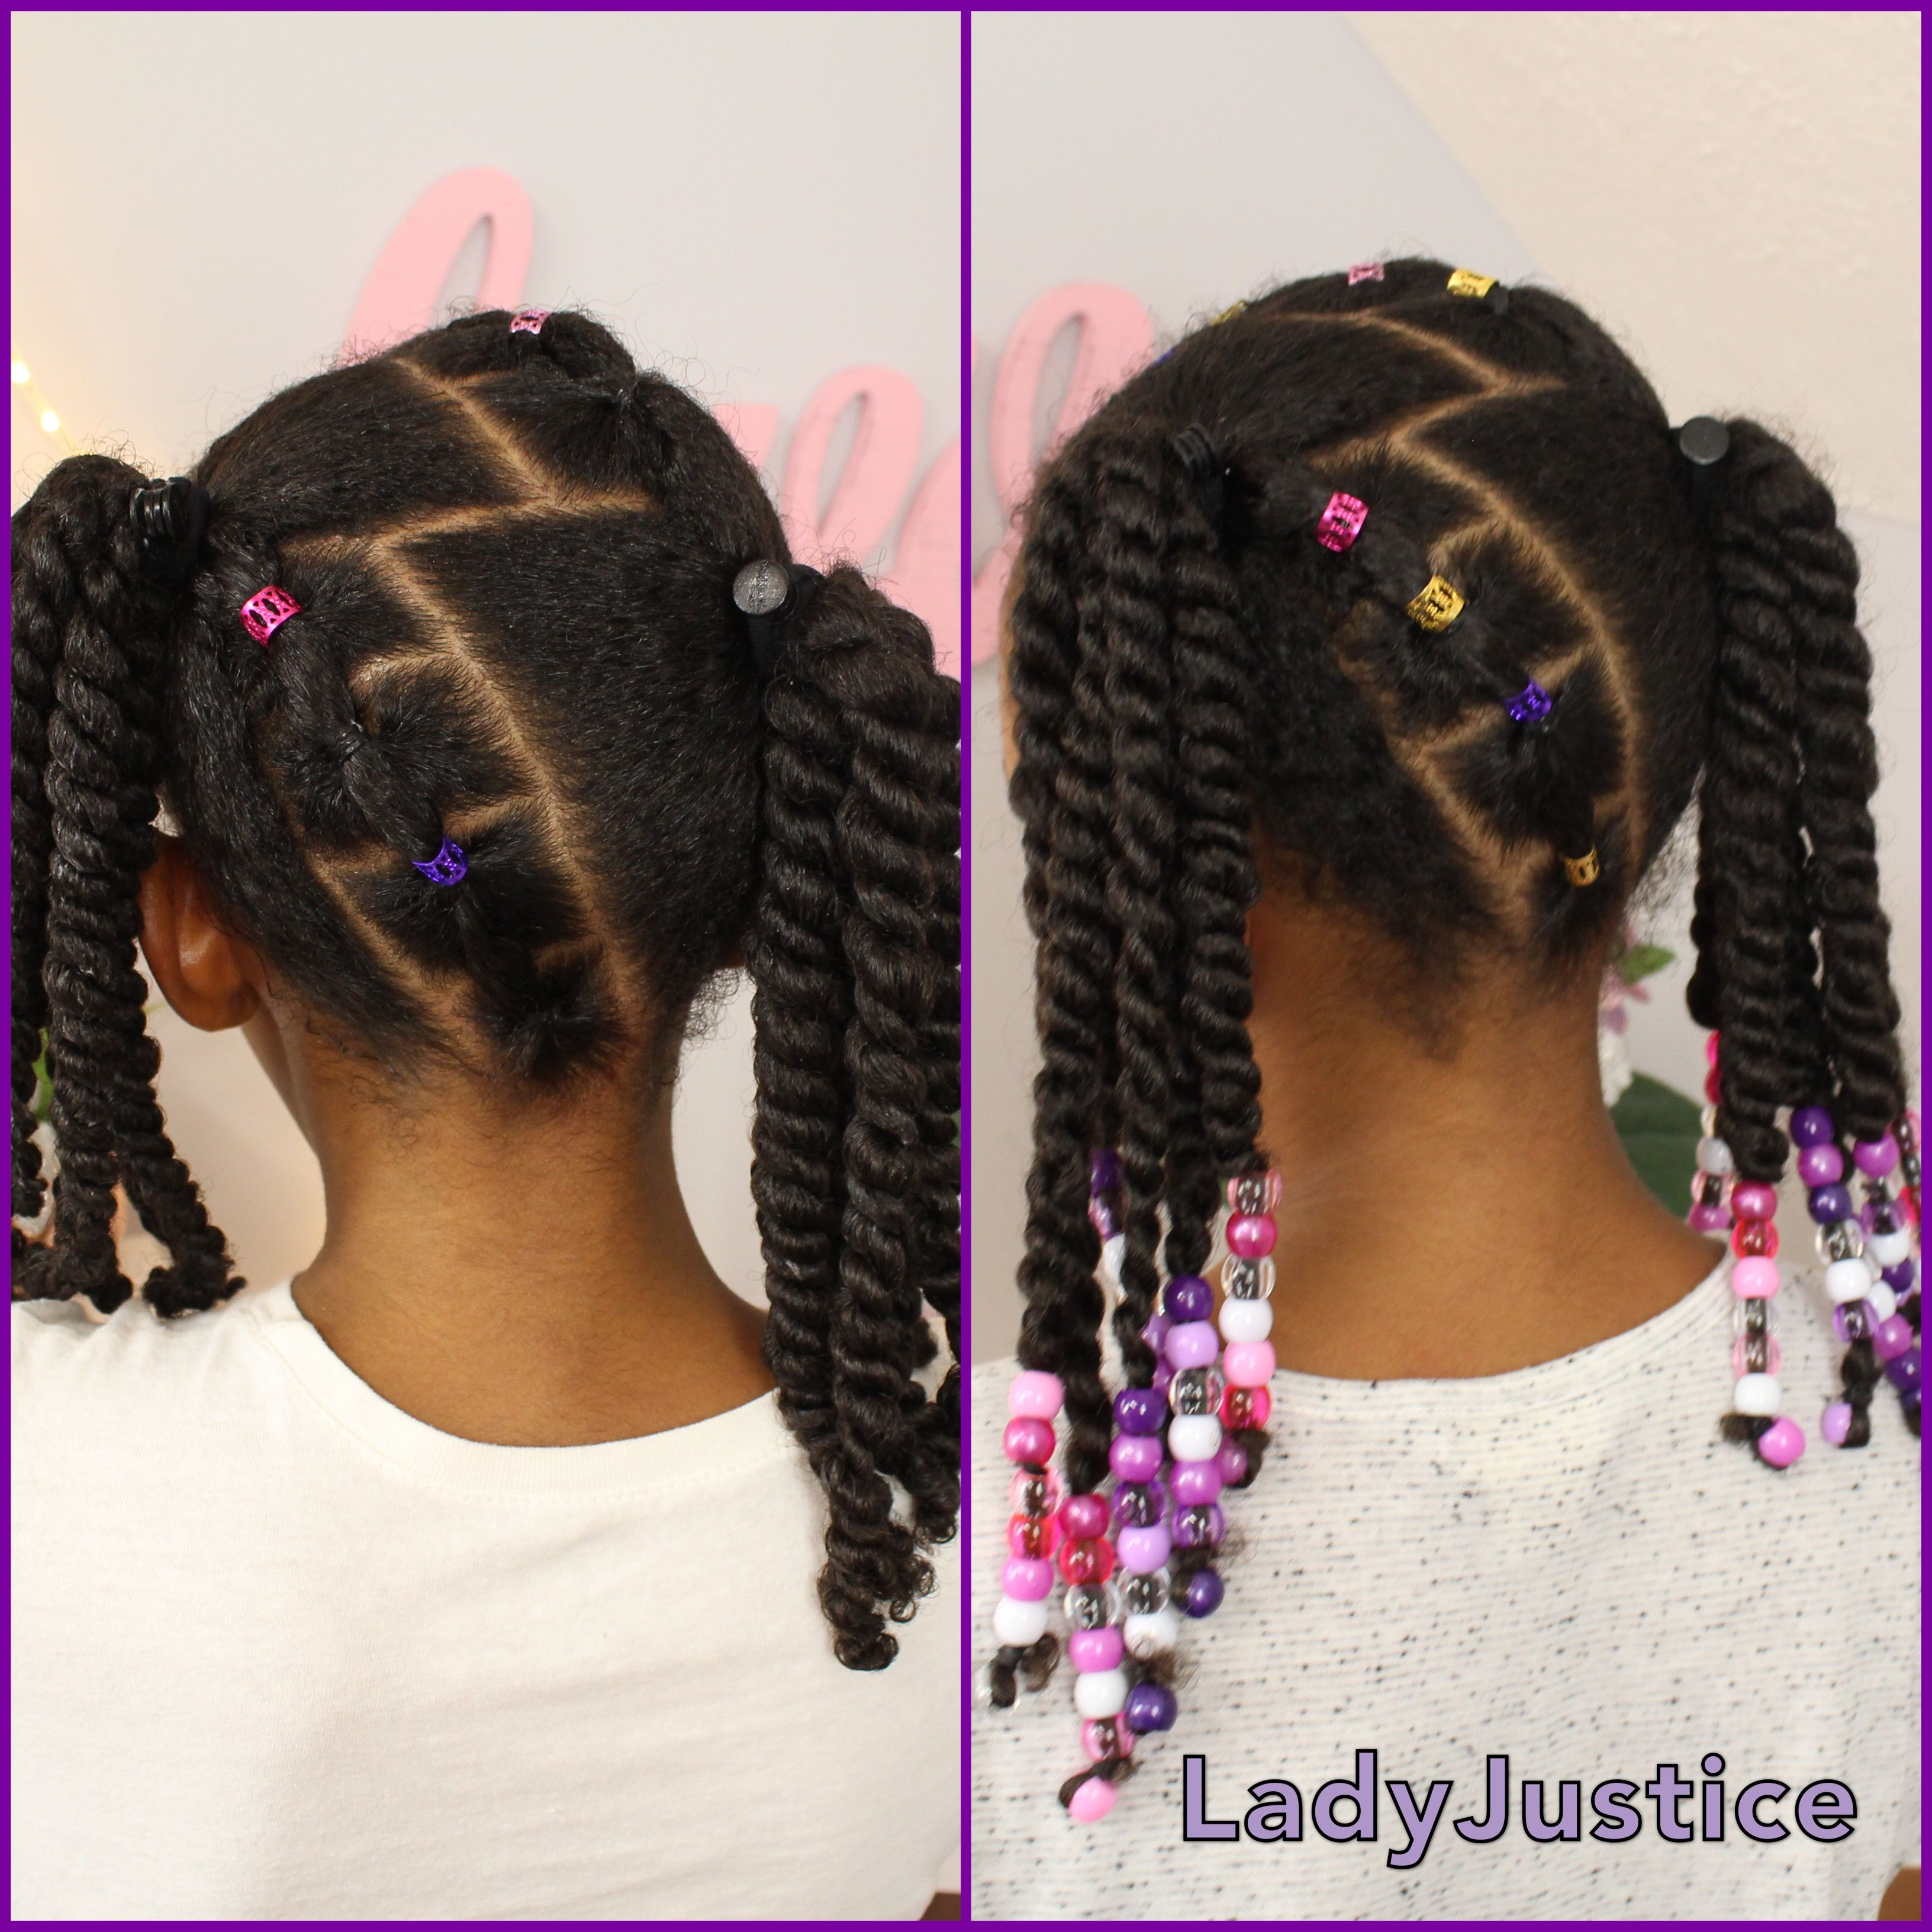 2 ponytails and 2 strand twists full tutorial linked | Hair styles, Girl  hairstyles, Kids hairstyles